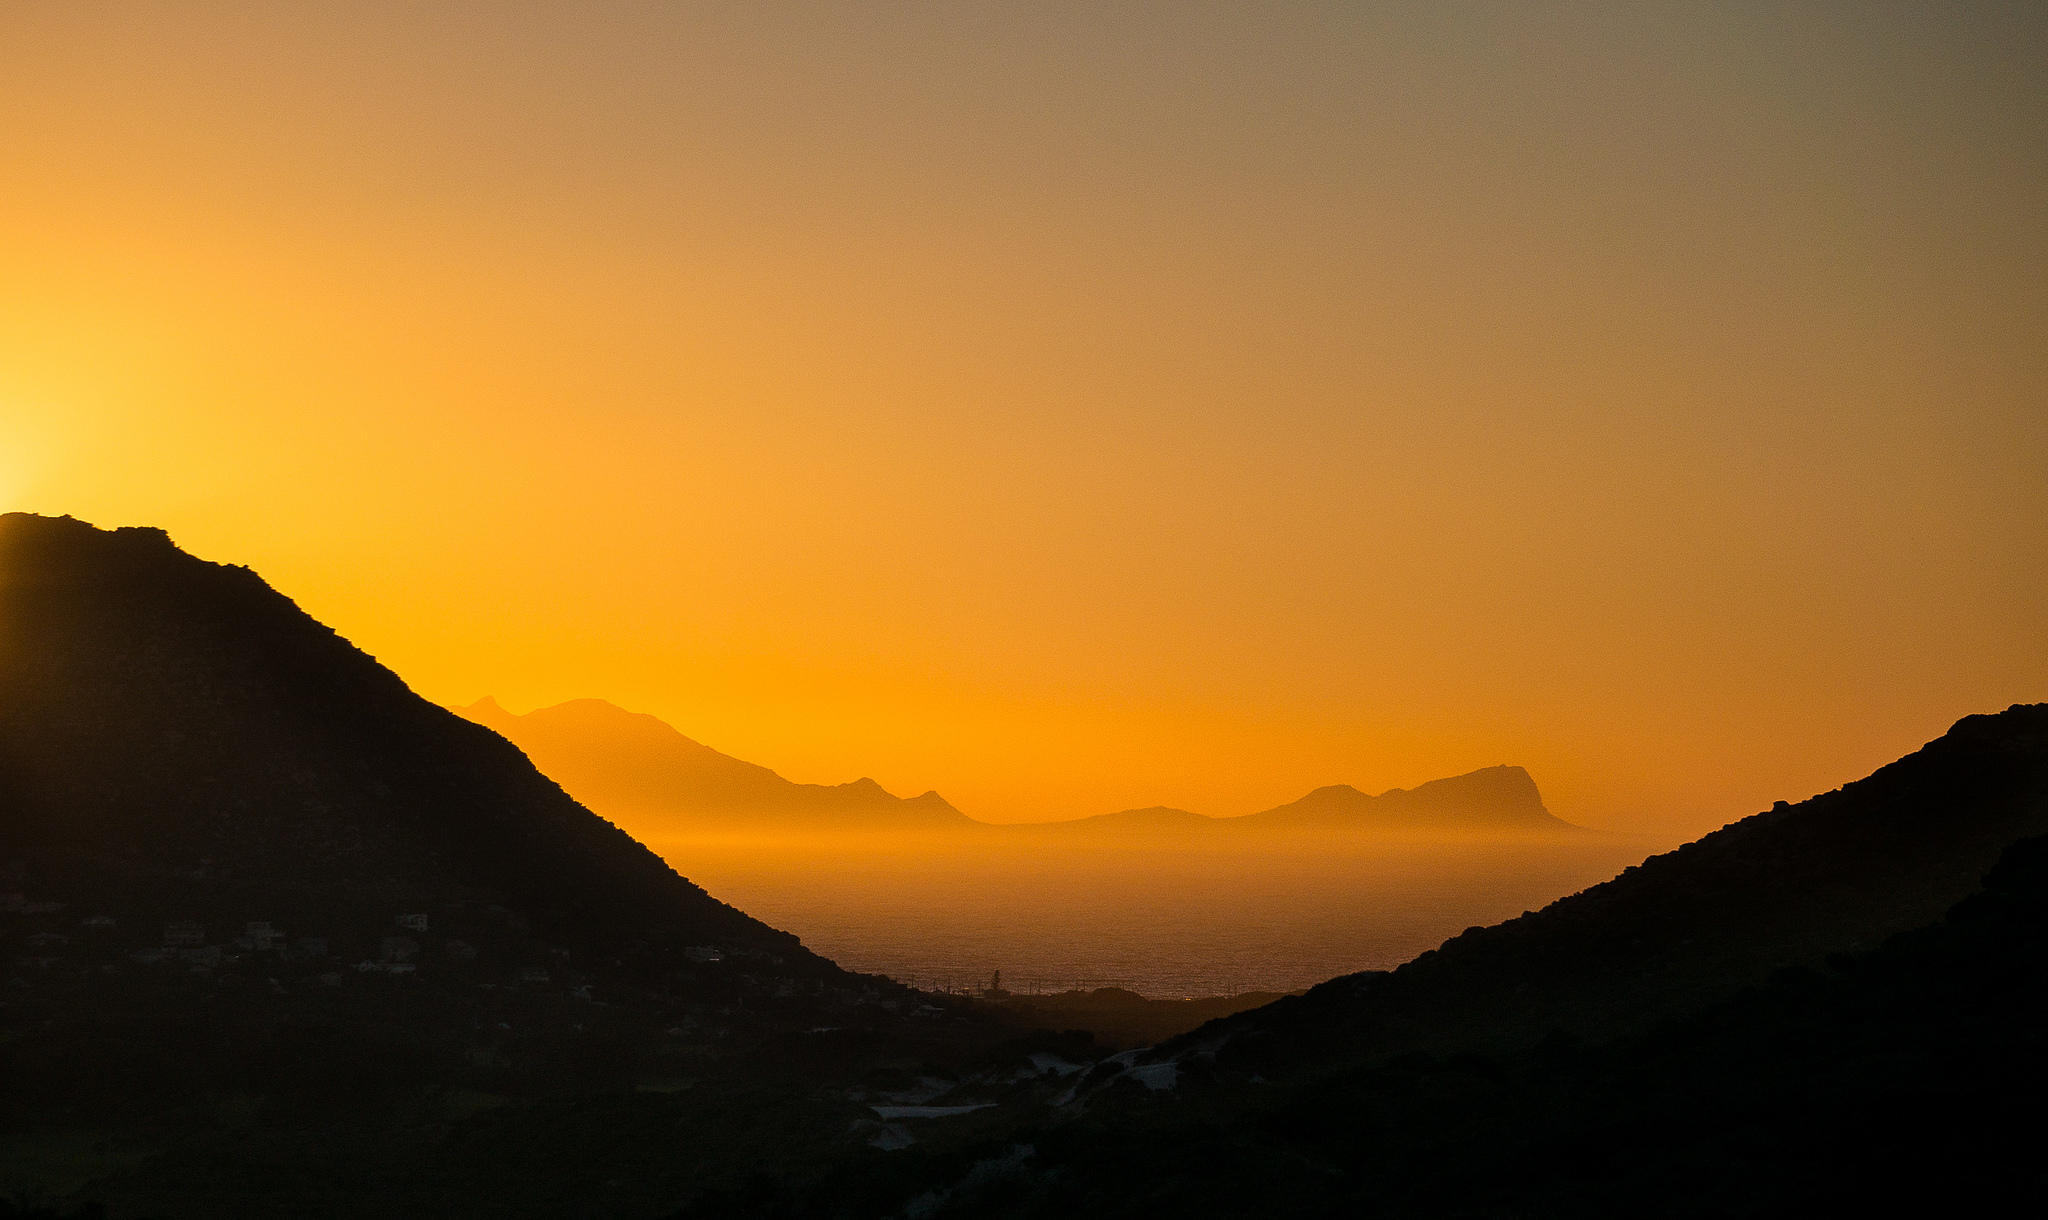 Where To Watch The Sunset In Cape Town